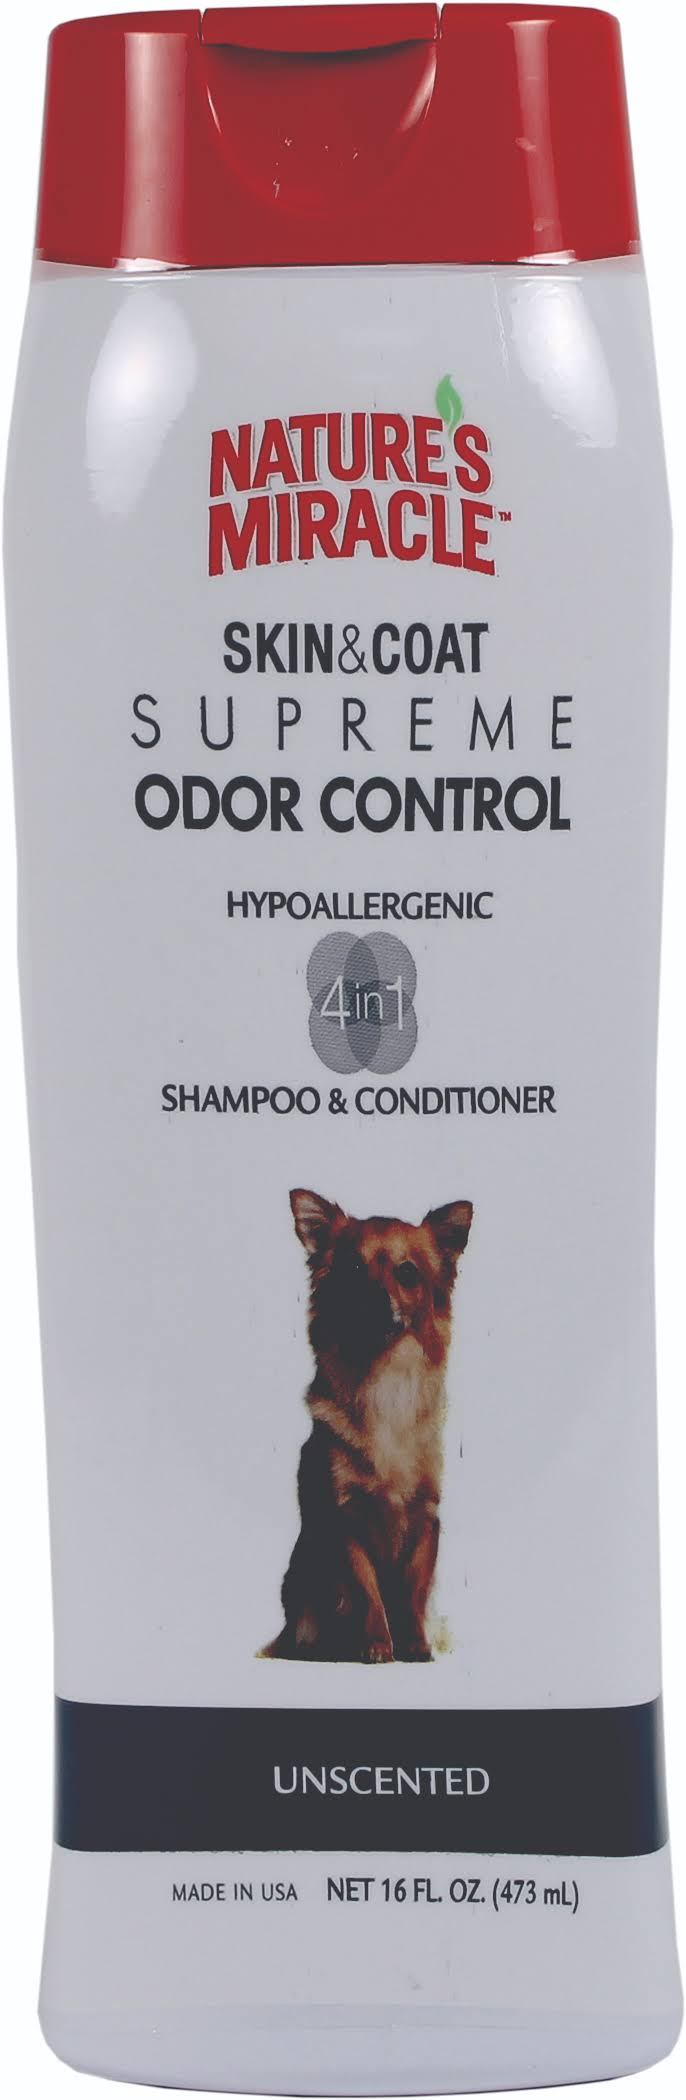 Nature's Miracle Supreme Odor Control Hypoallergenic Shampoo and Conditioner - Unscented